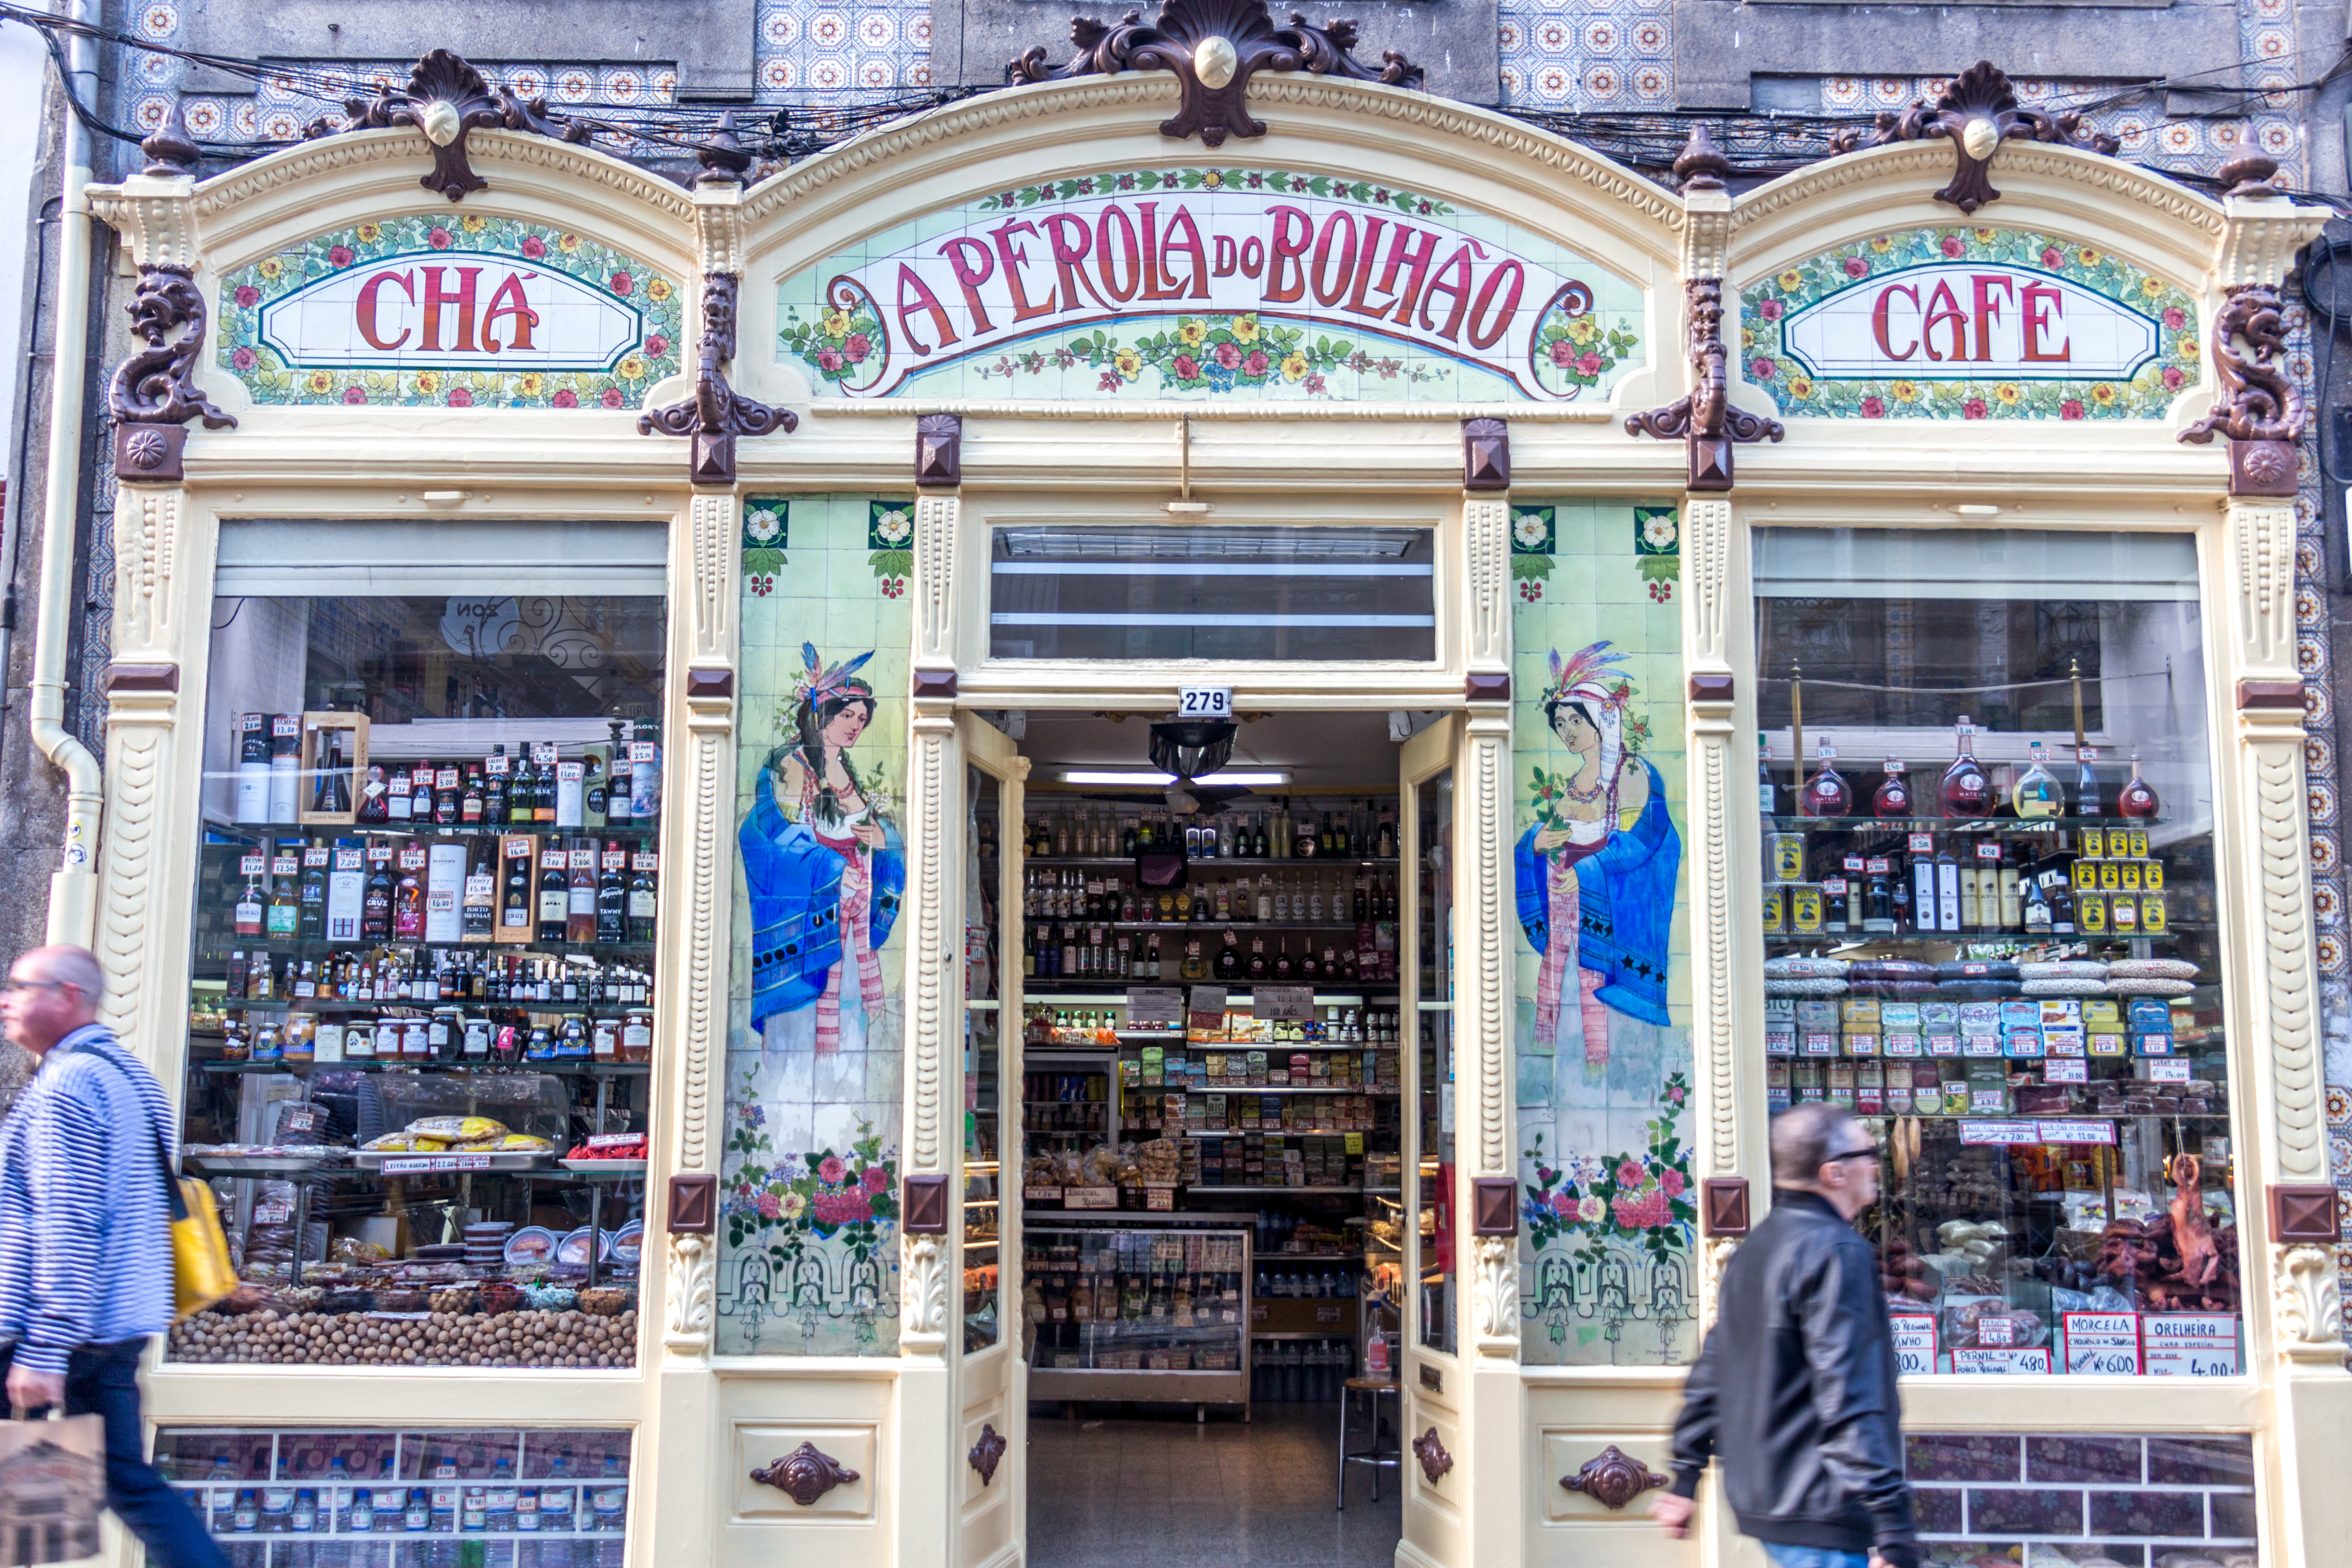 A p c3 a9rola do bolh c3 a3o is a traditional shop in porto that stocks wine 2c cheese 2c olives 2c olive oil and the much loved bacalhau